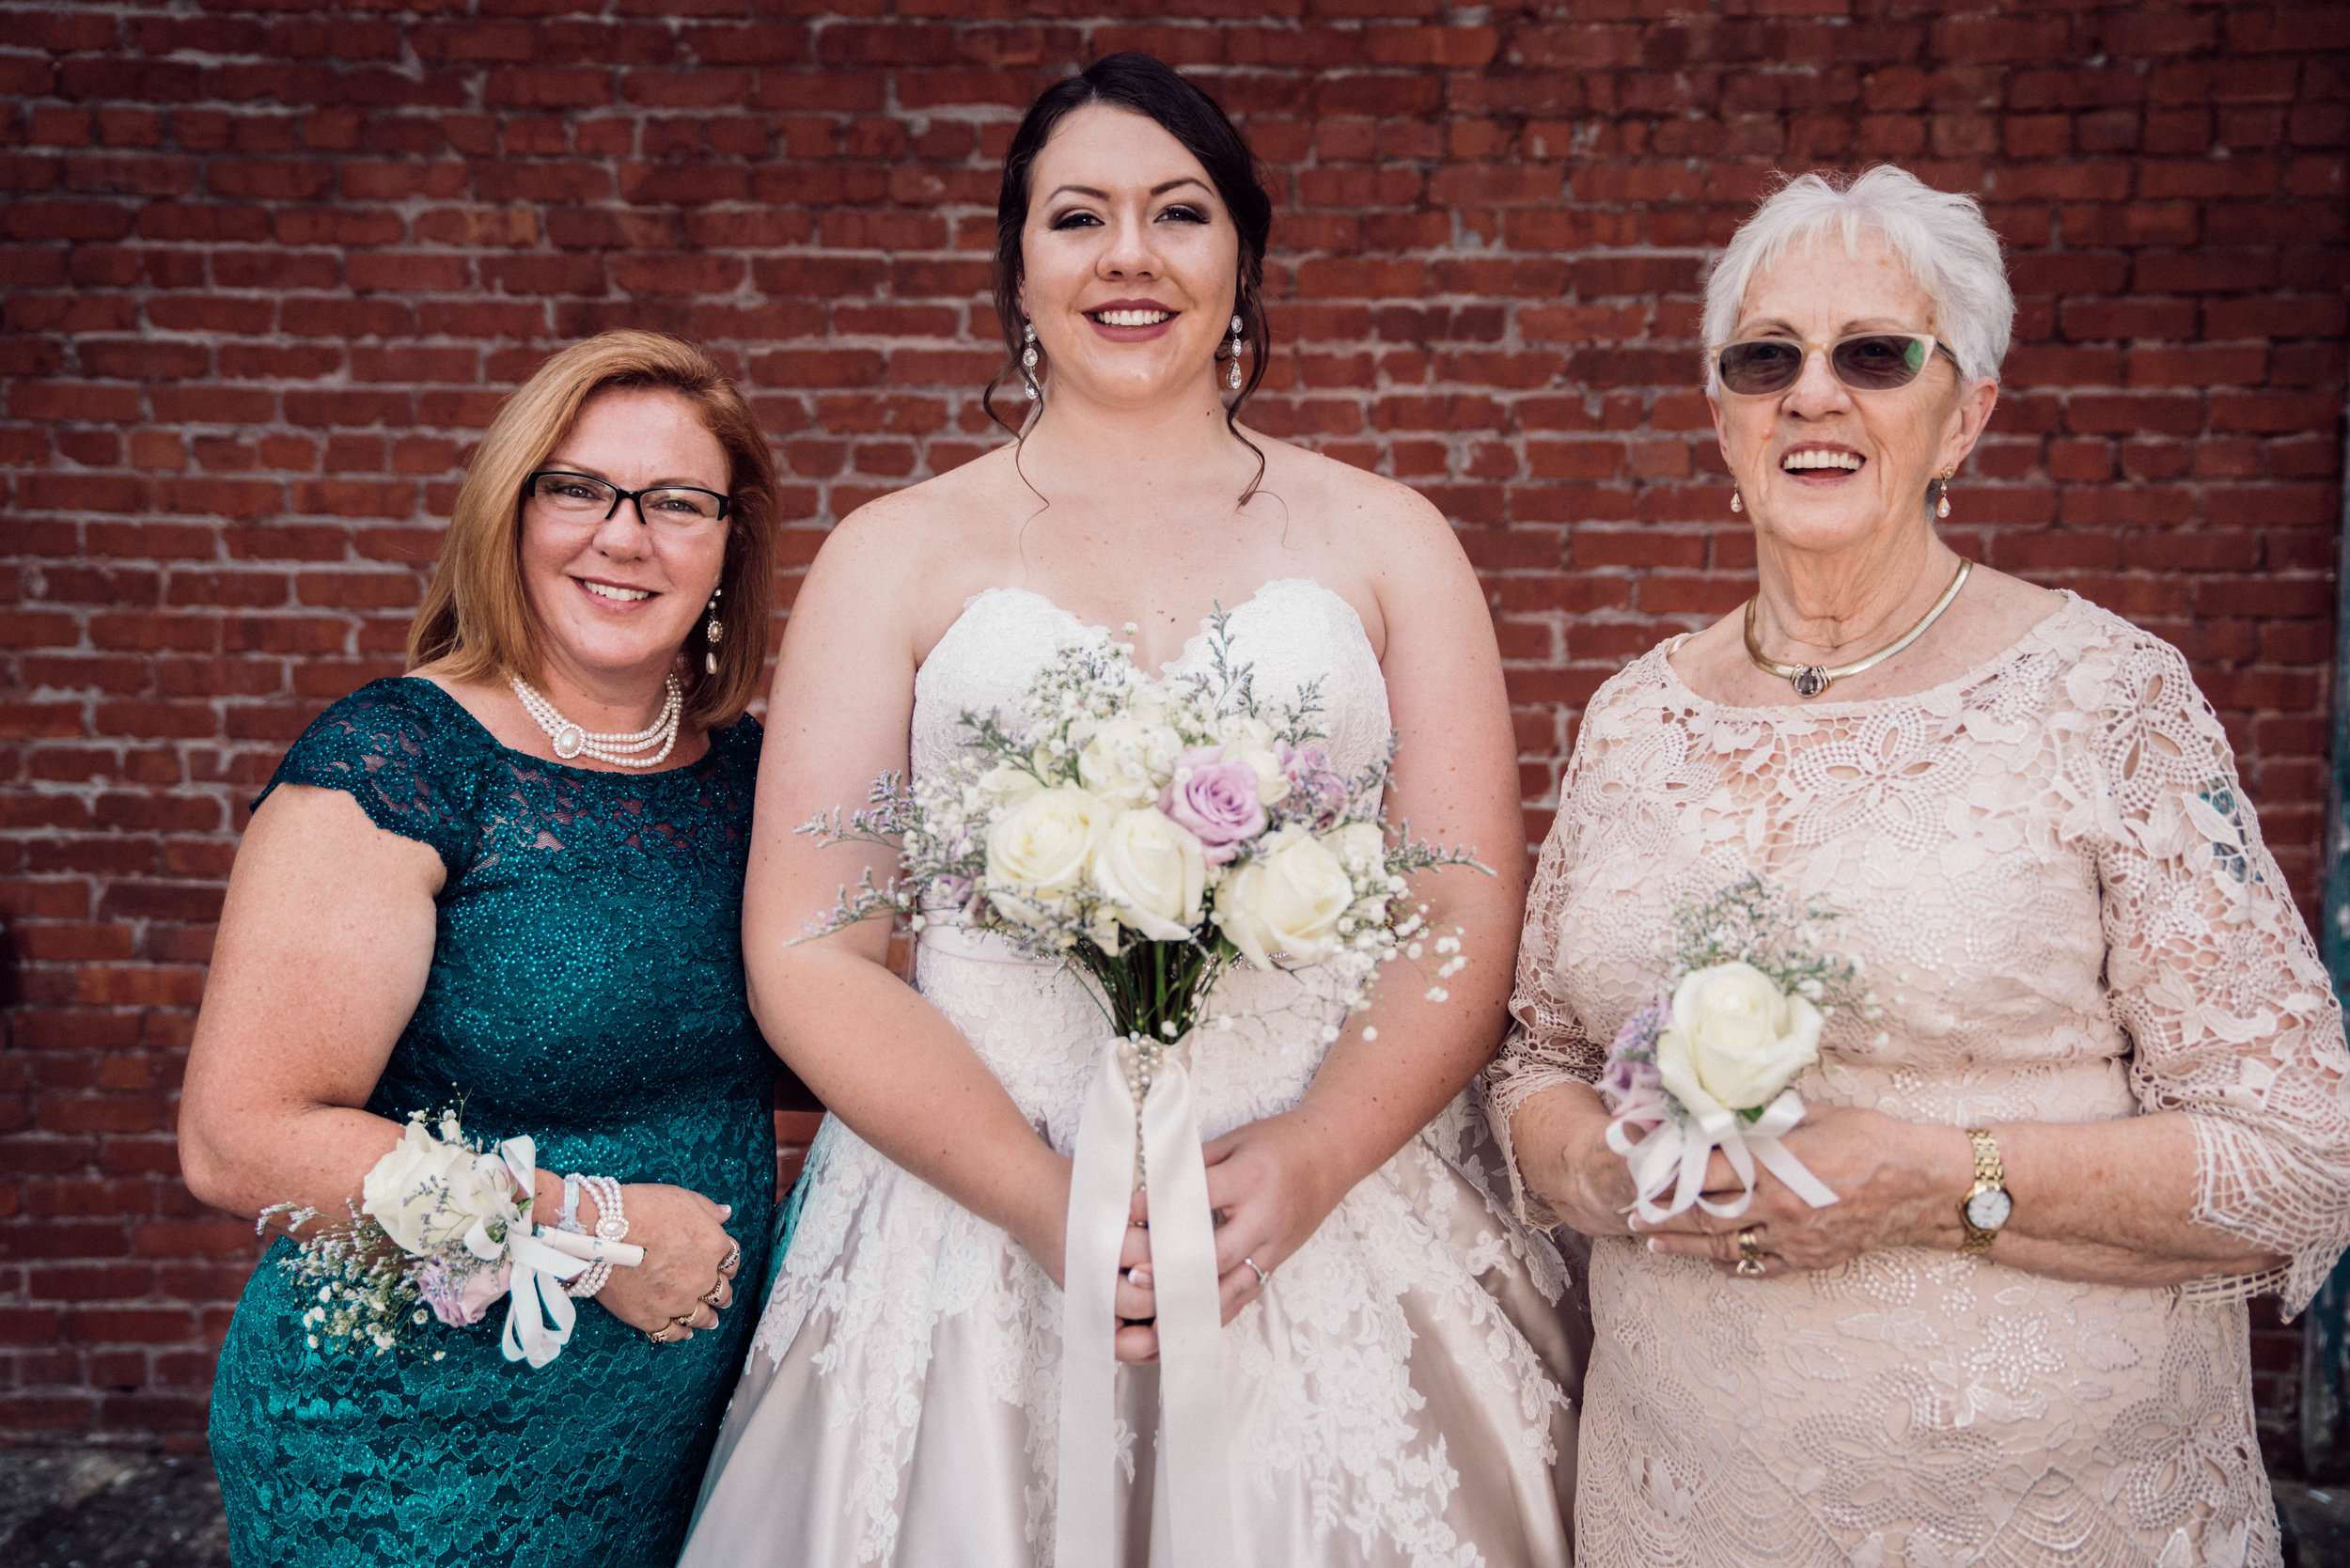 Bride Maids & Family Together LR-77.jpg